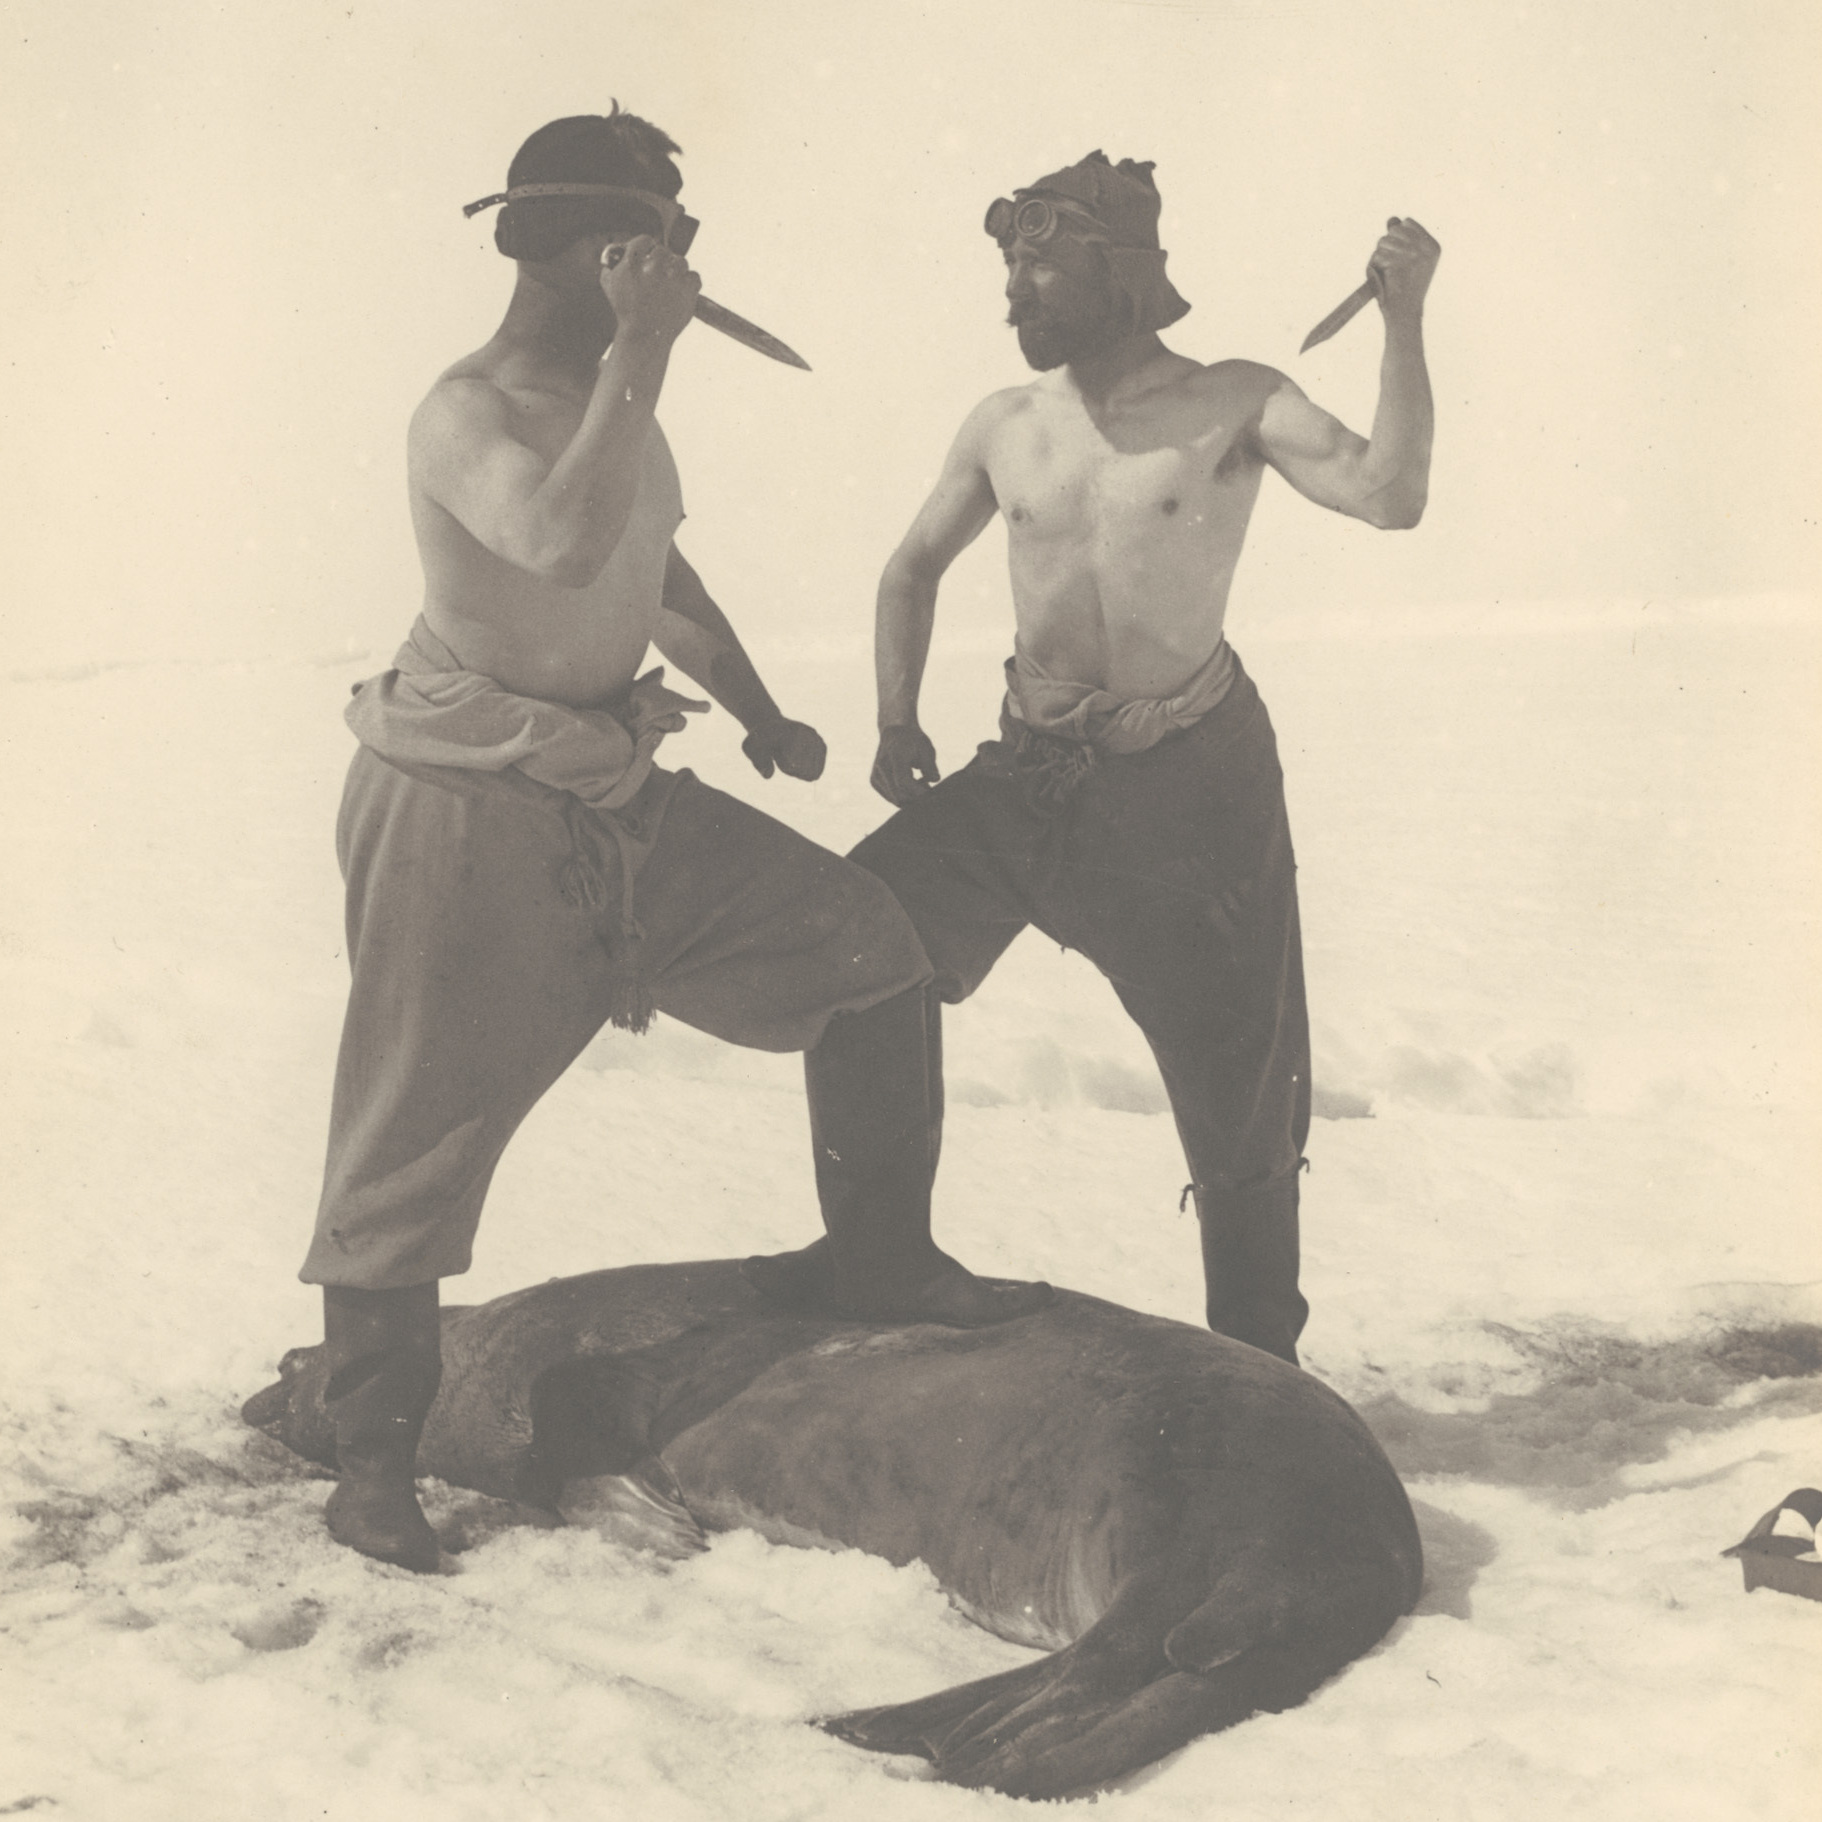 Frank Wild -- Ernest Shackleton's second-in-command on the Endurance voyage -- and M.H. Moyes slay a Weddell seal.